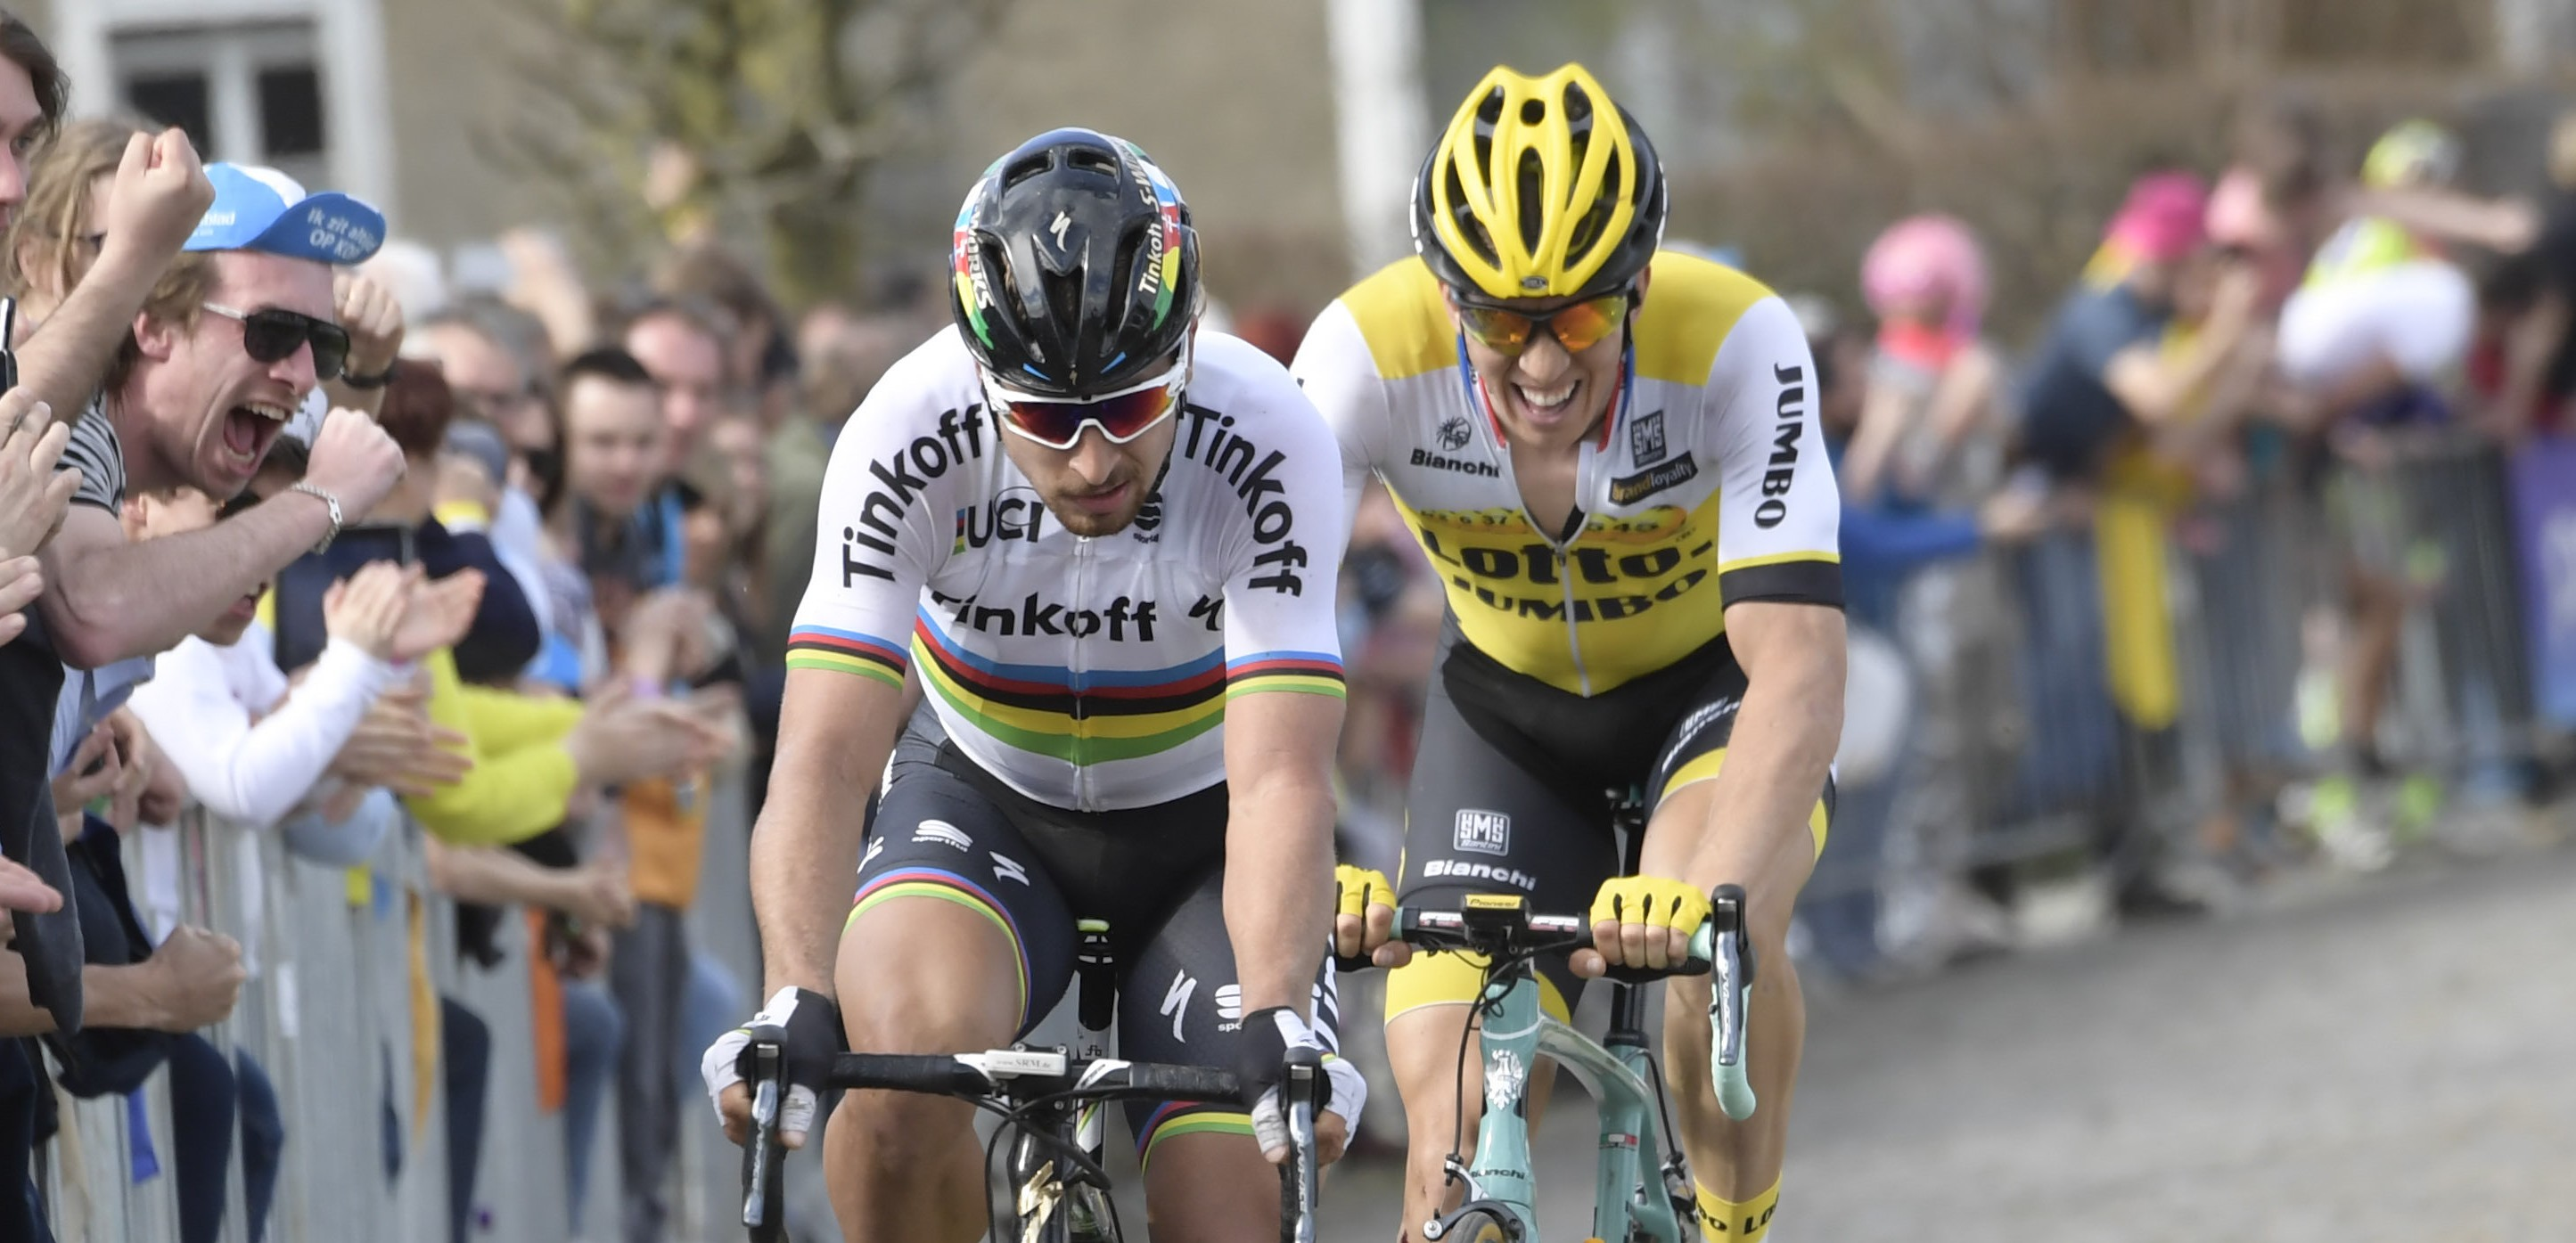 03-04-2016 Tour Des Flandres; 2016, Tinkoff; 2016, Lotto Nl - Jumbo; Sagan, Peter; Vanmarcke, Sep; Old Kwaremont;